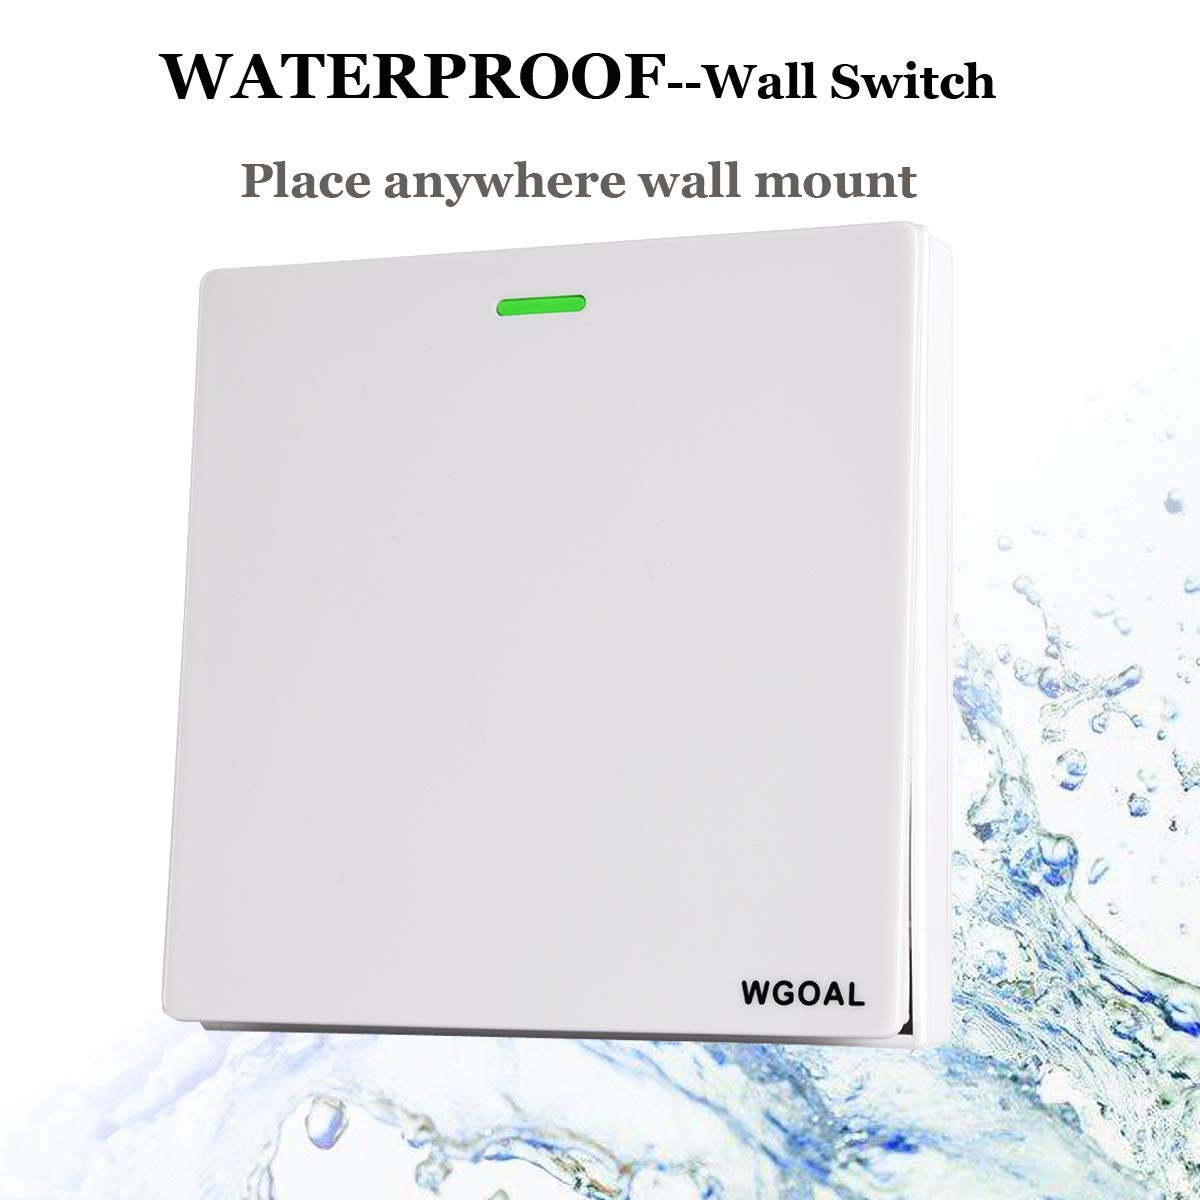 WGOAL Wireless Lights Switch Kit Waterproof Wireless Wall Switches for Lamps Fans Ceiling Light Appliances 1 Push Switch and 1 Receiver -1 Year Warranty No Battery No Wiring